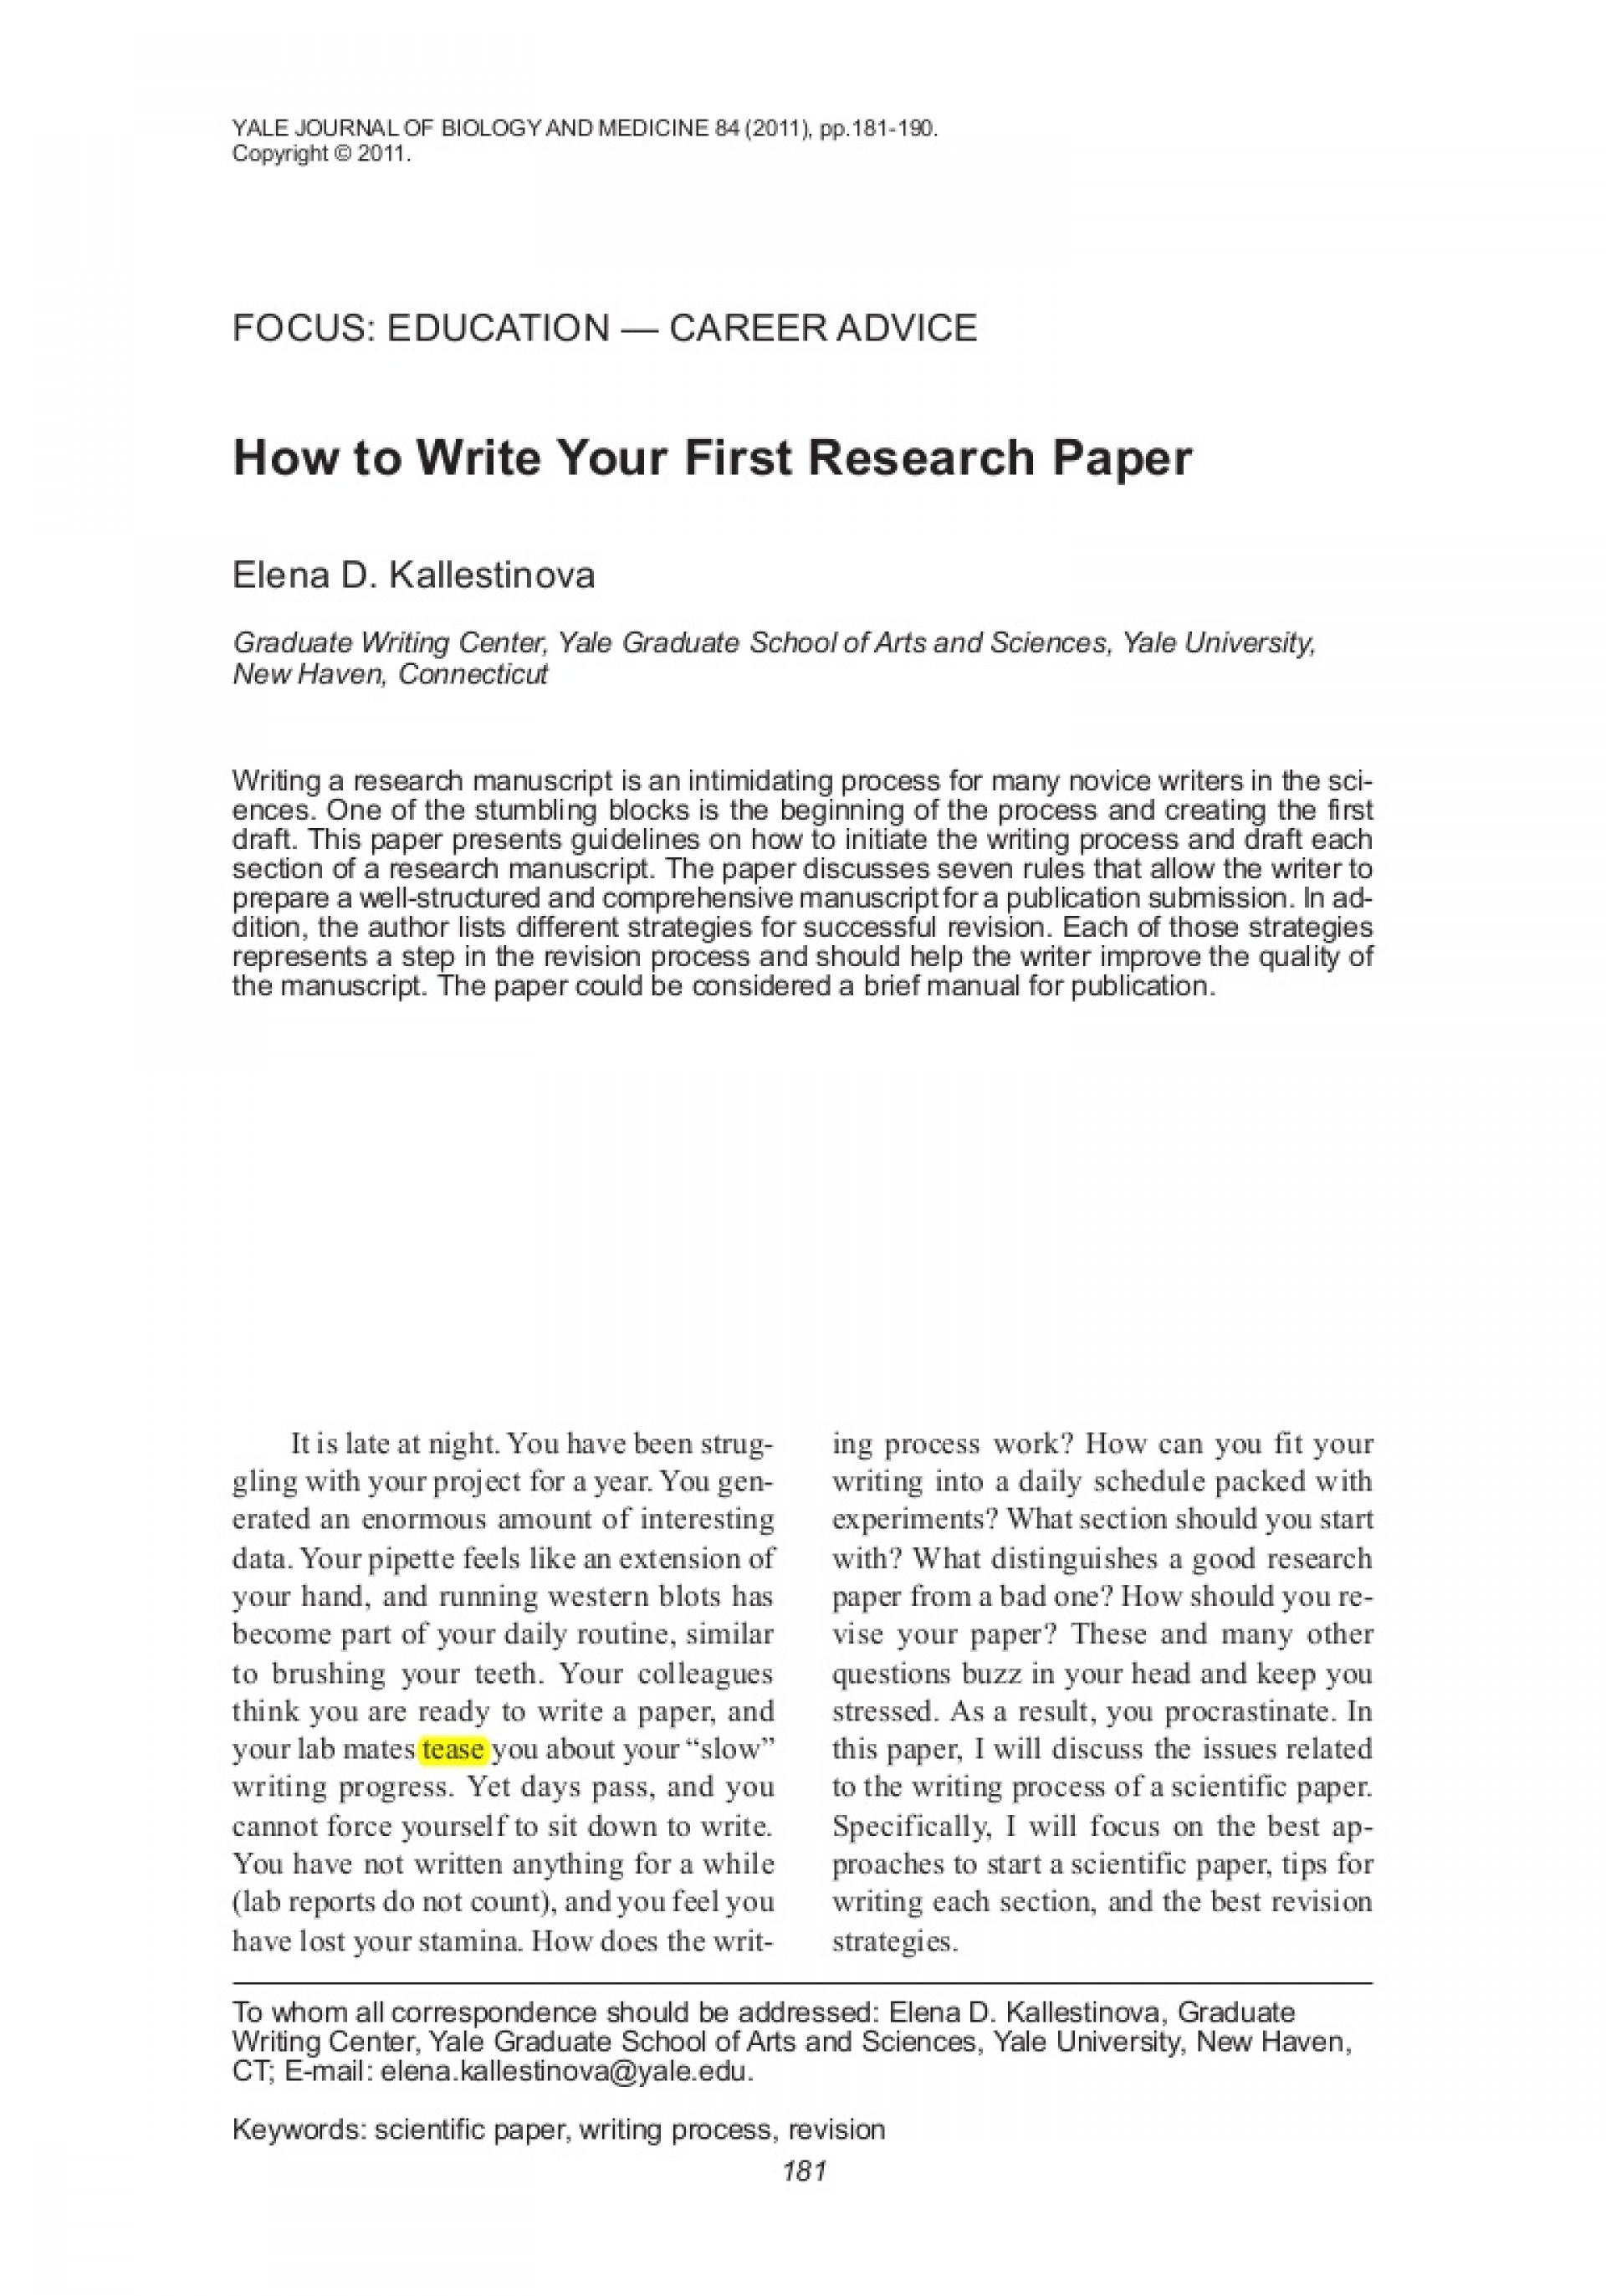 008 Research Paper How To Write Papers Howtowriteyourfirstresearchpaper Lva1 App6891 Thumbnail Outstanding A Proposal Or Thesis In Apa Format Introduction Pdf 1920